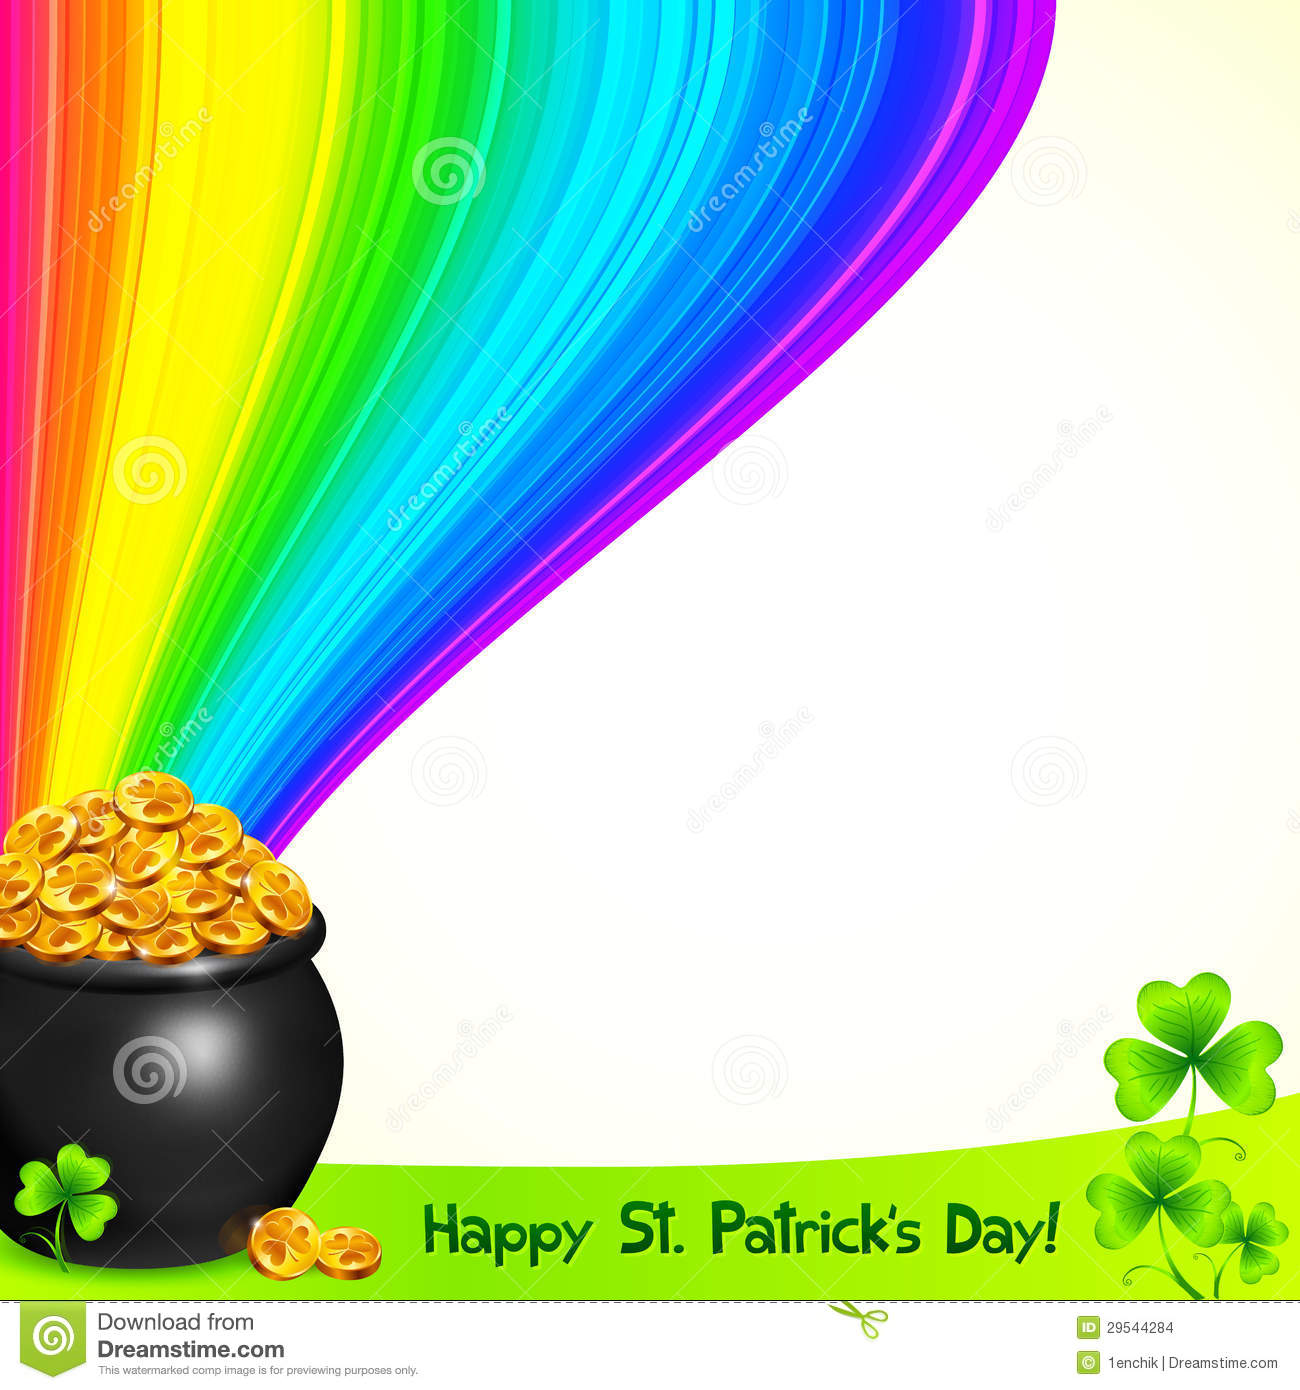 St. Patrick's day cards pictures